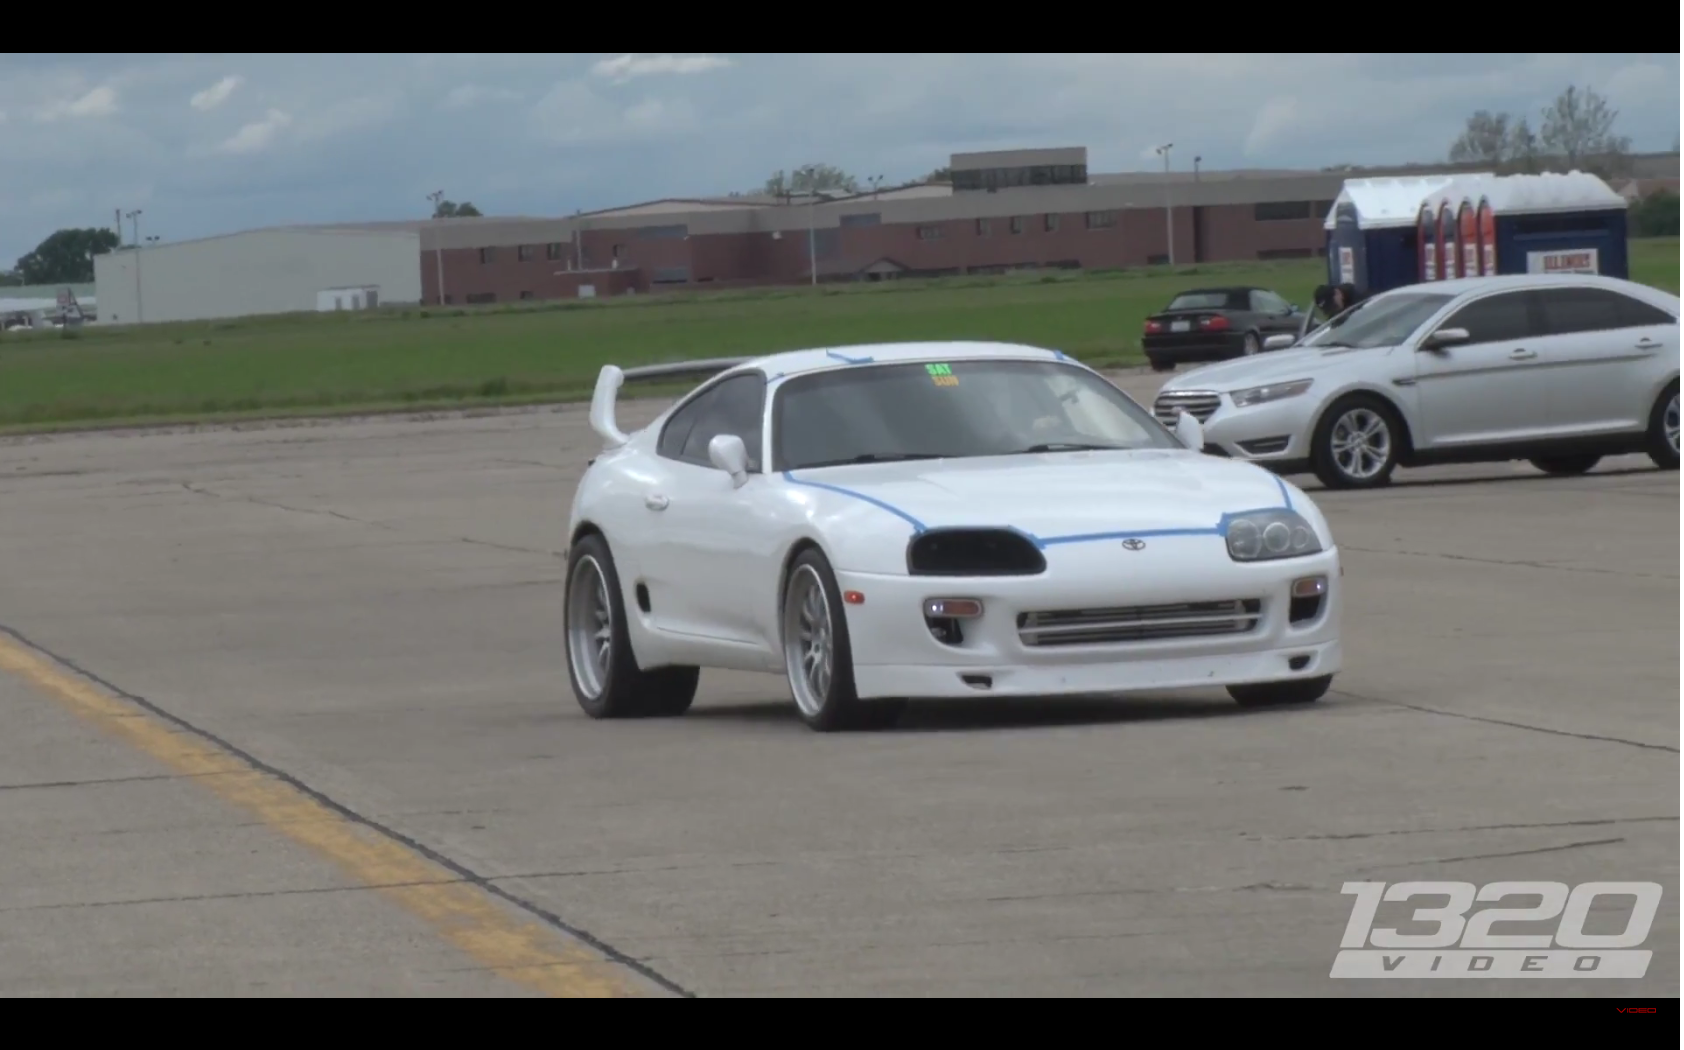 8b6a87a5dcf5 Possibly the CLEANEST Supra We ve EVER Seen! - Turbo and Stance